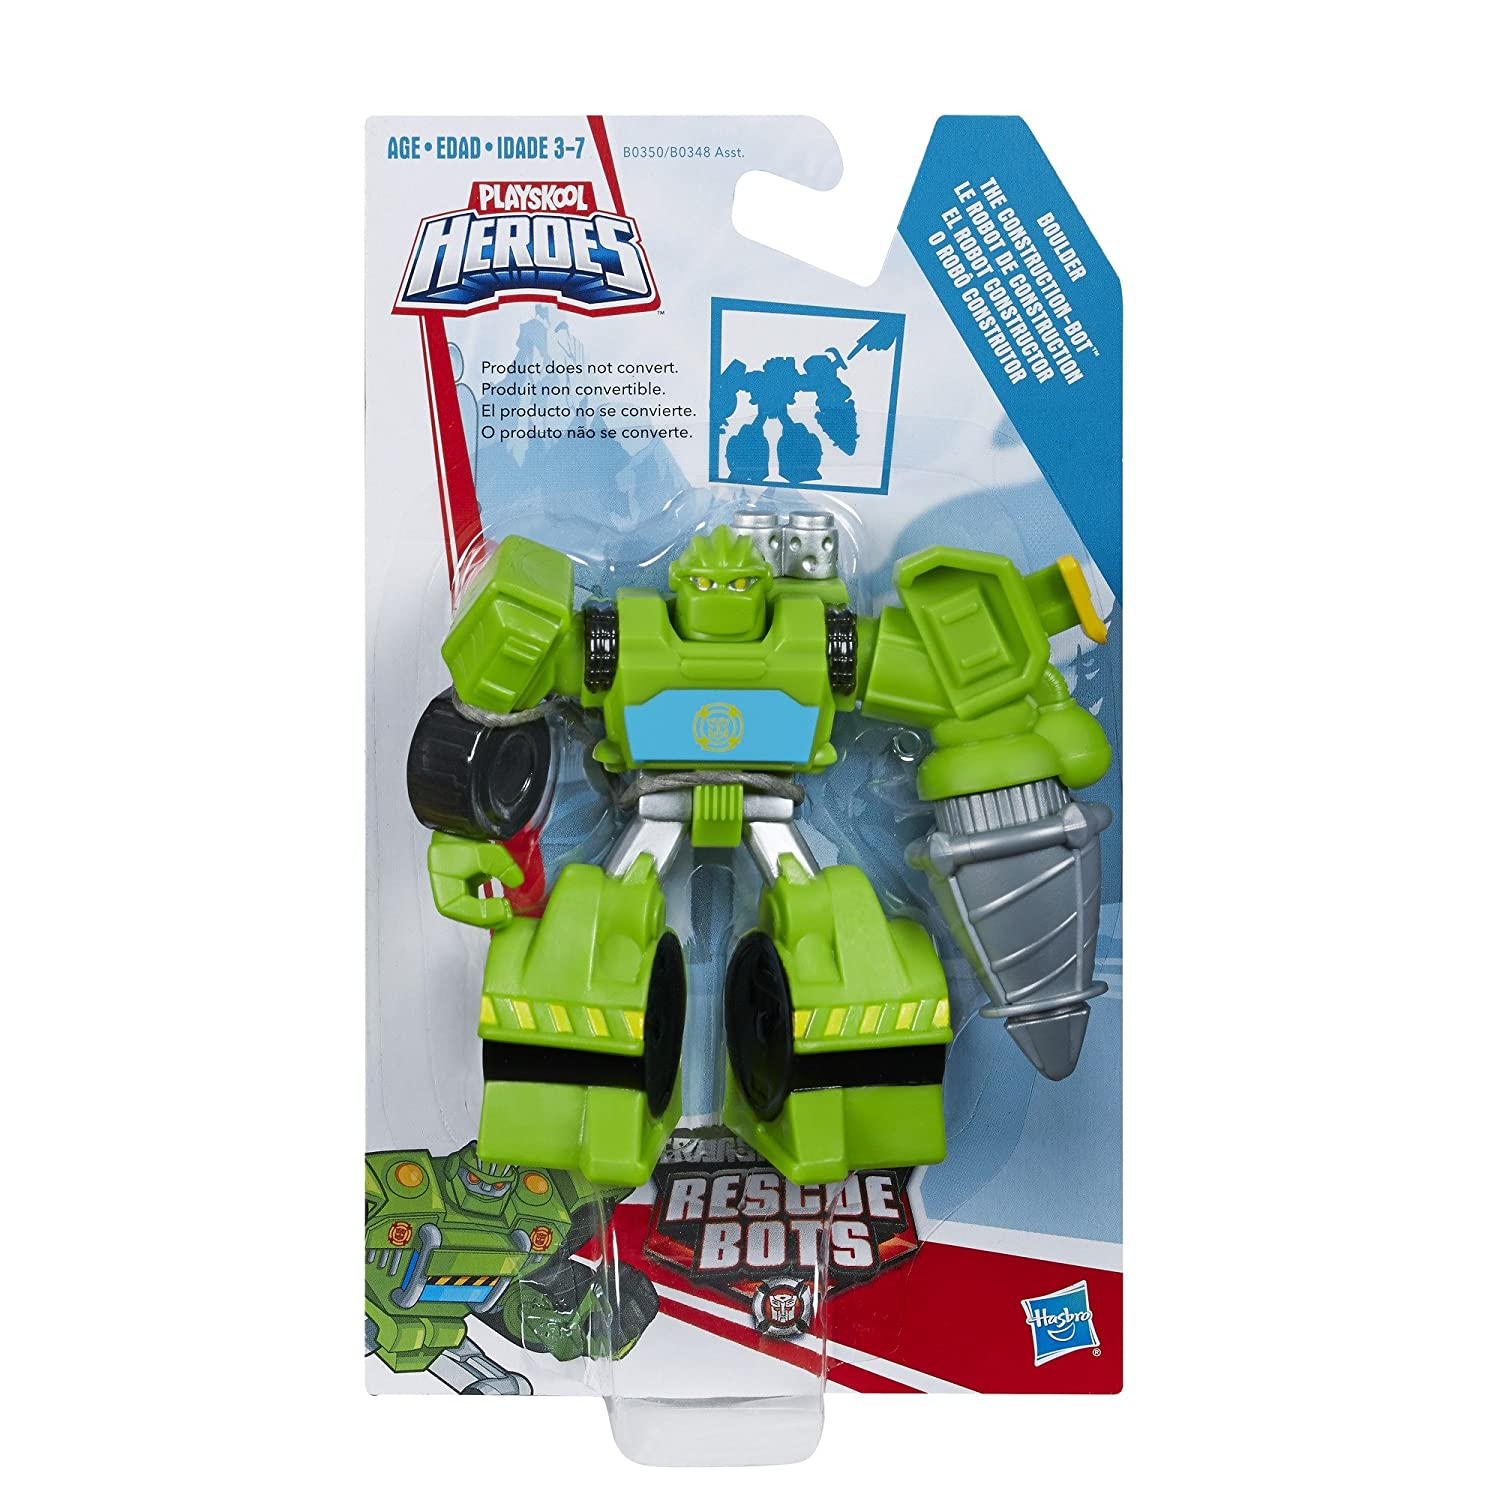 Playskool Heroes Transformers Rescue Bots Boulder the Construction-Bot Figure by Playskool: Amazon.es: Juguetes y juegos